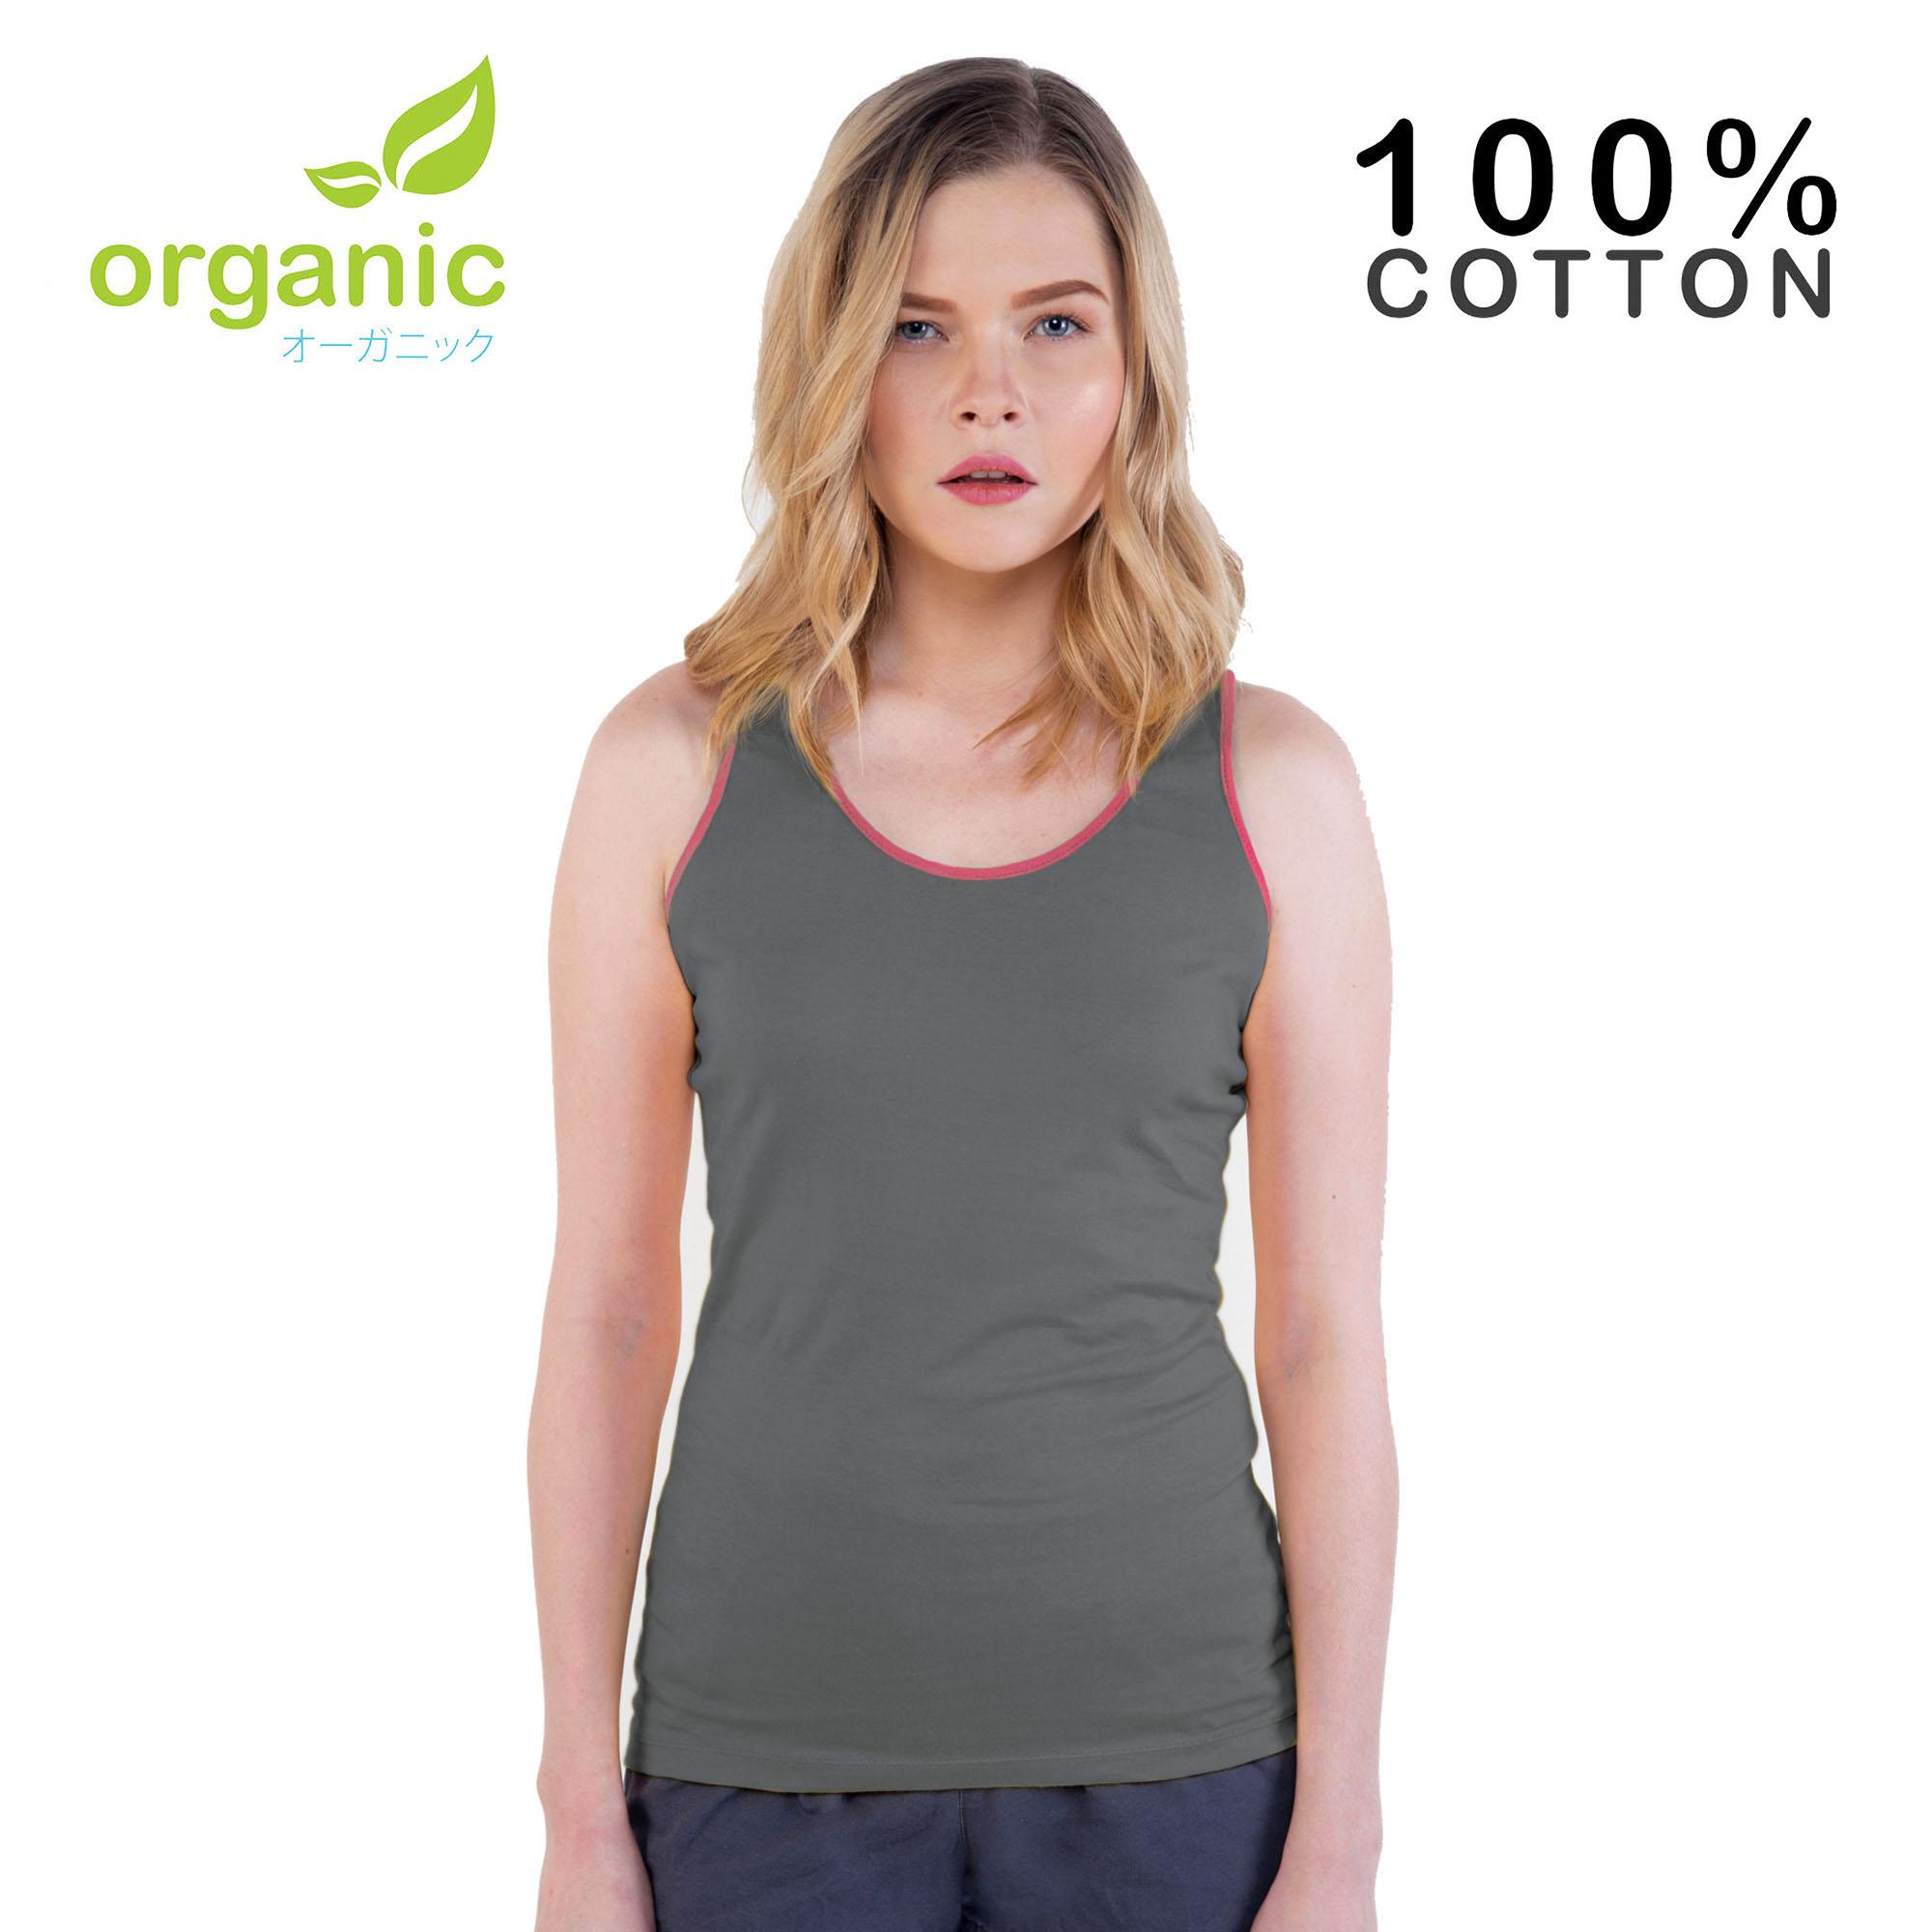 6e2a9a4f98 Tank Tops for Women for sale - Camisole for Women Online Deals & Prices in  Philippines   Lazada.com.ph